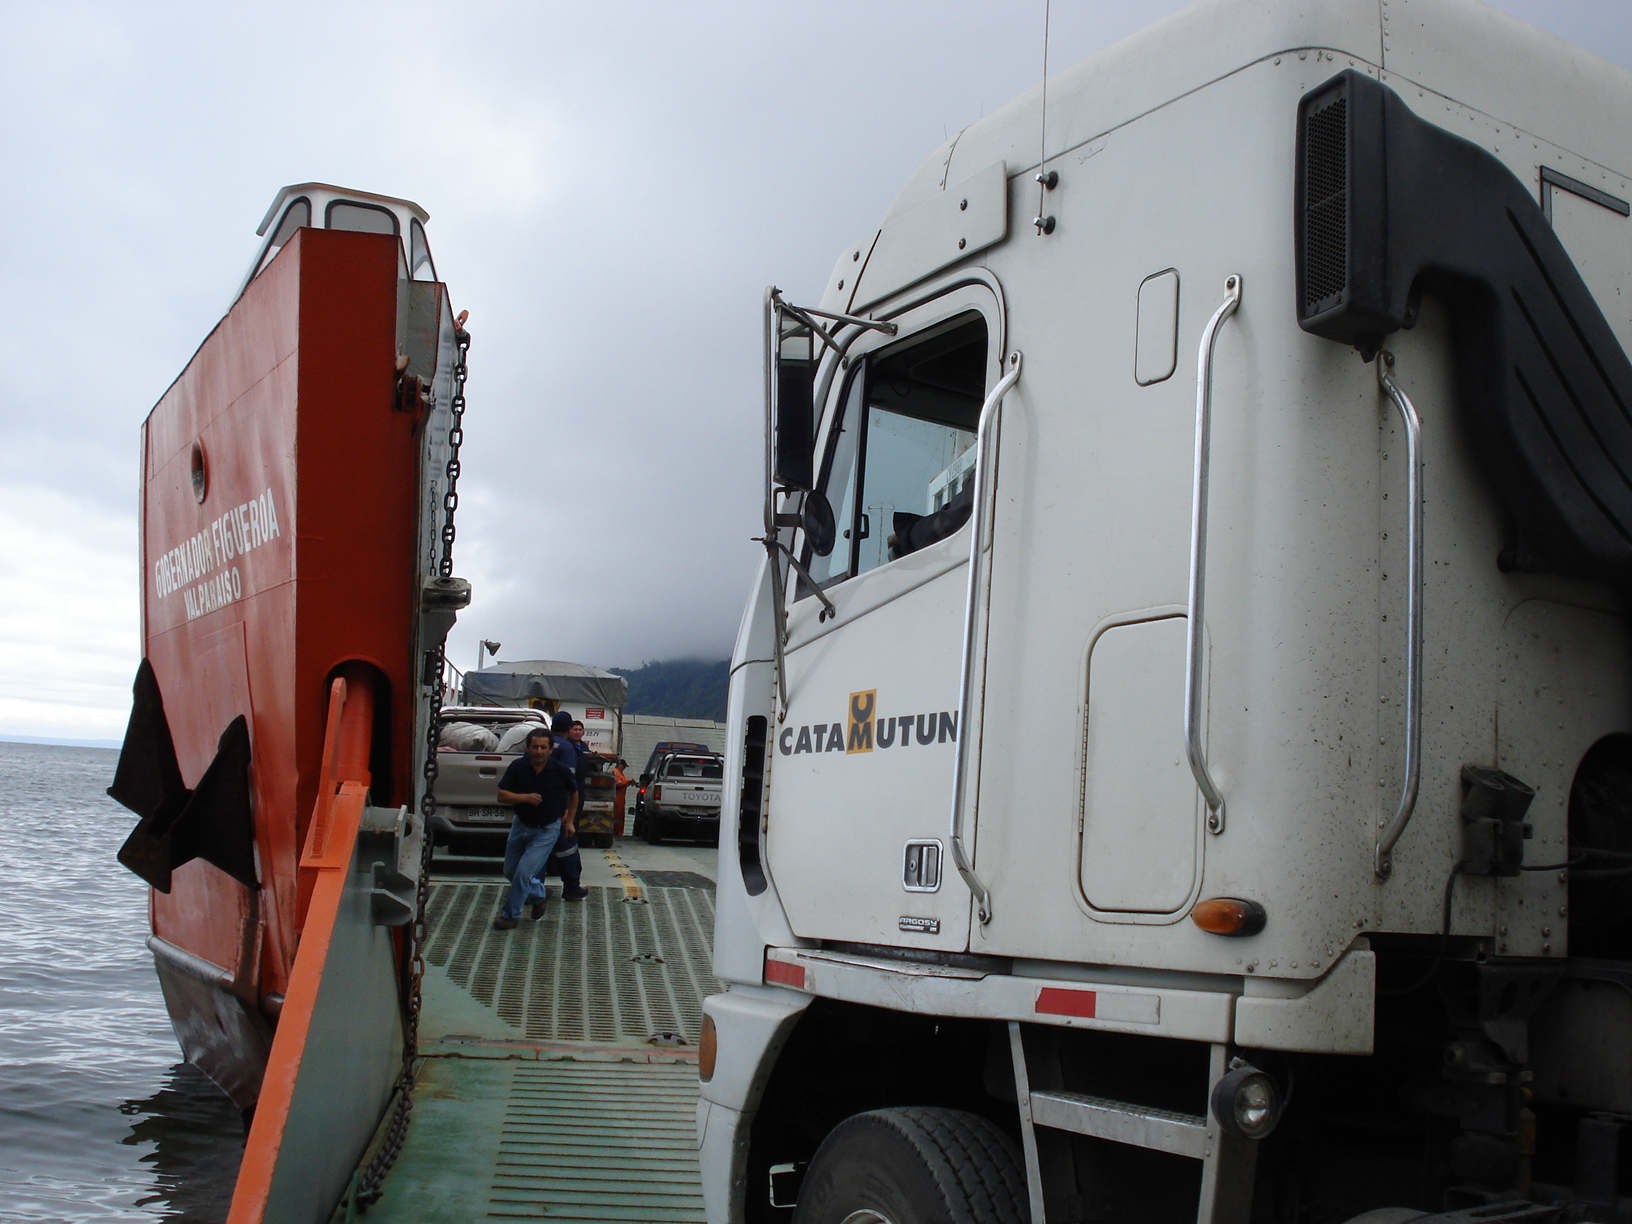 camion_1